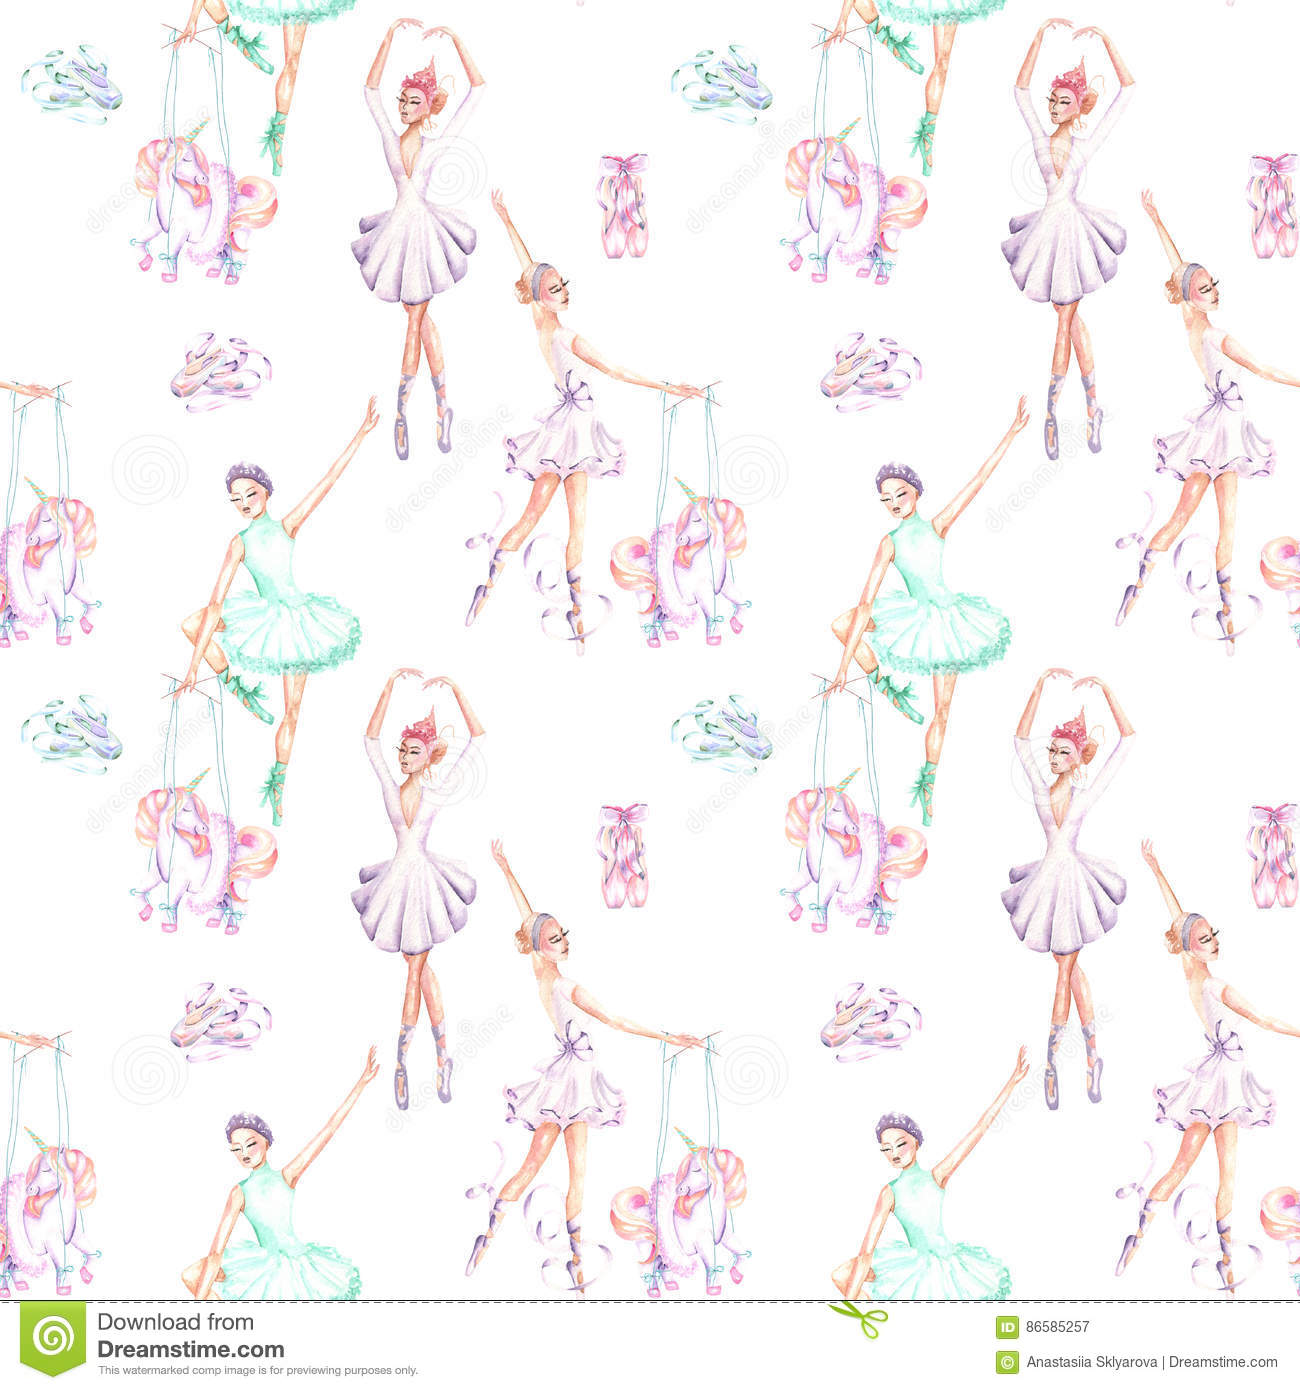 Seamless pattern of ballet dancers royalty free stock photography - Royalty Free Stock Photo Seamless Pattern With Watercolor Ballet Dancers Puppet Unicorns And Pointe Shoes Stock Illustration